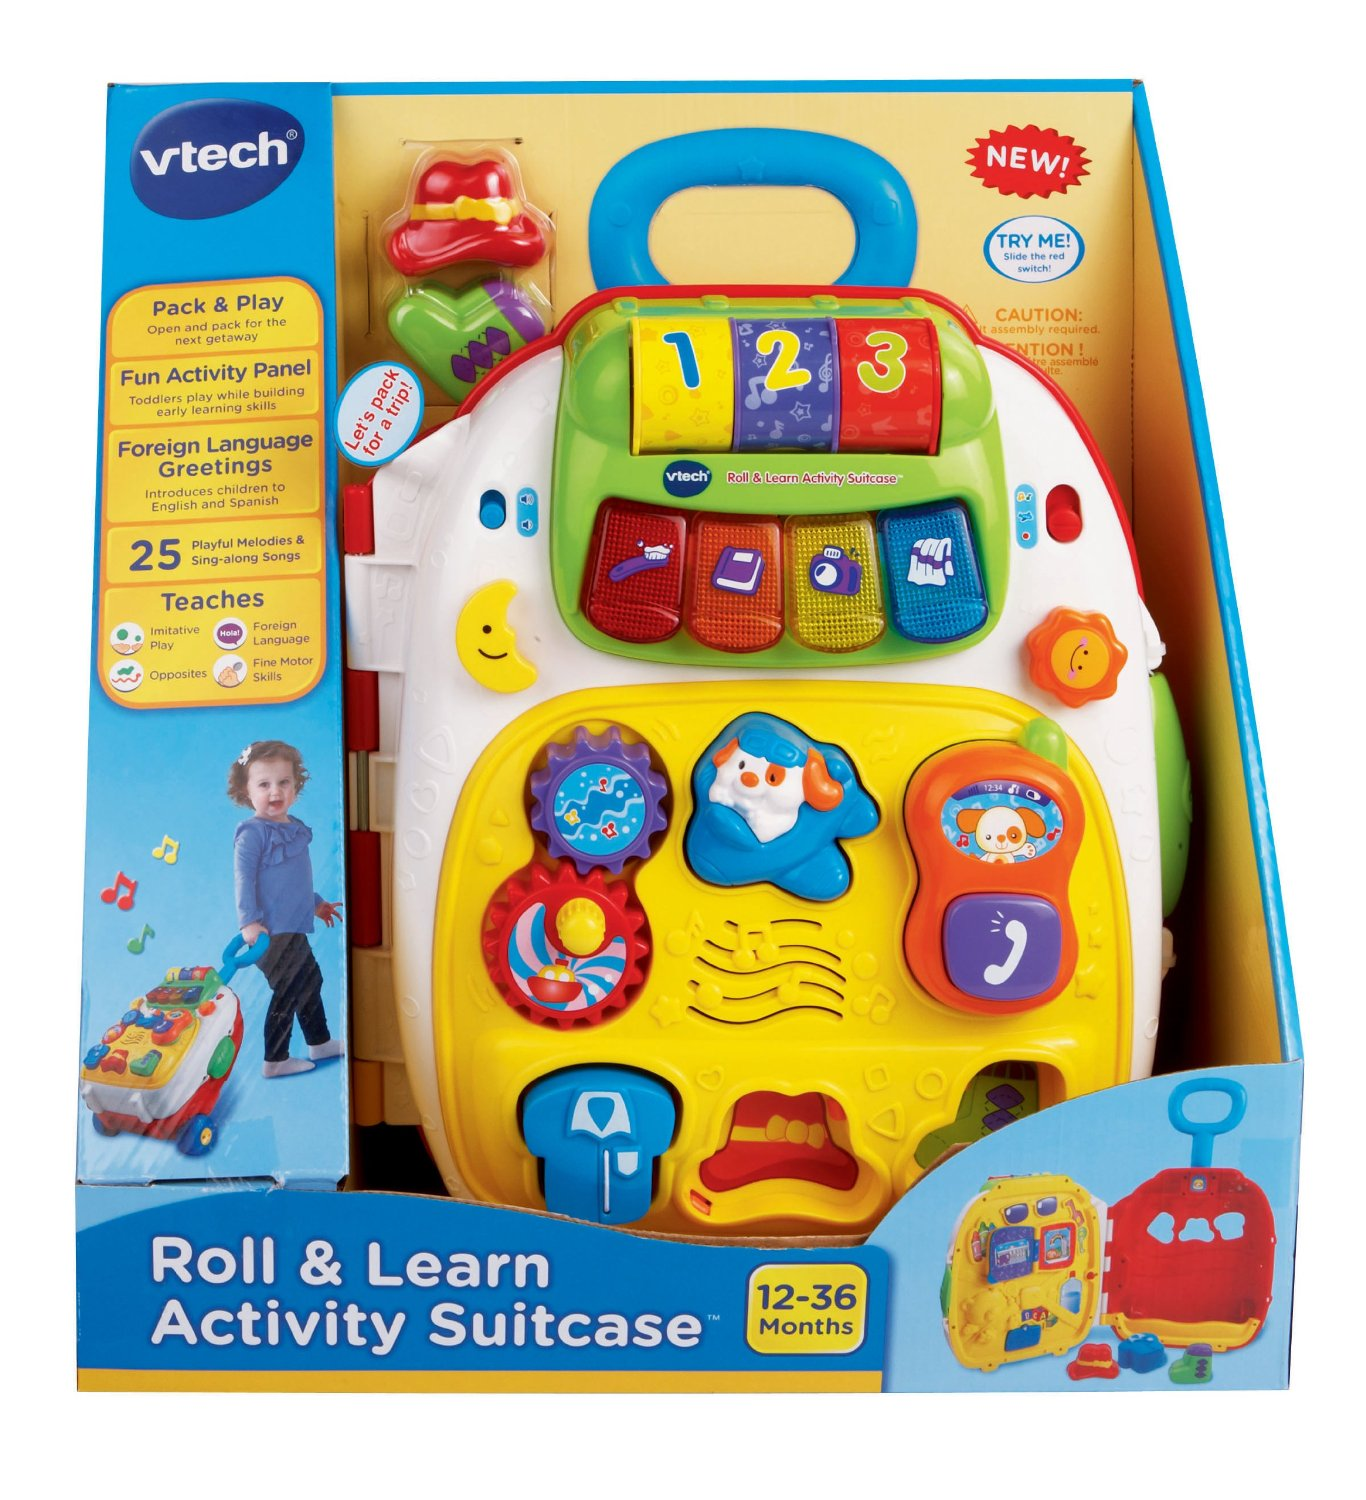 Vtech My First Luggage VT price in Pakistan Vtech in